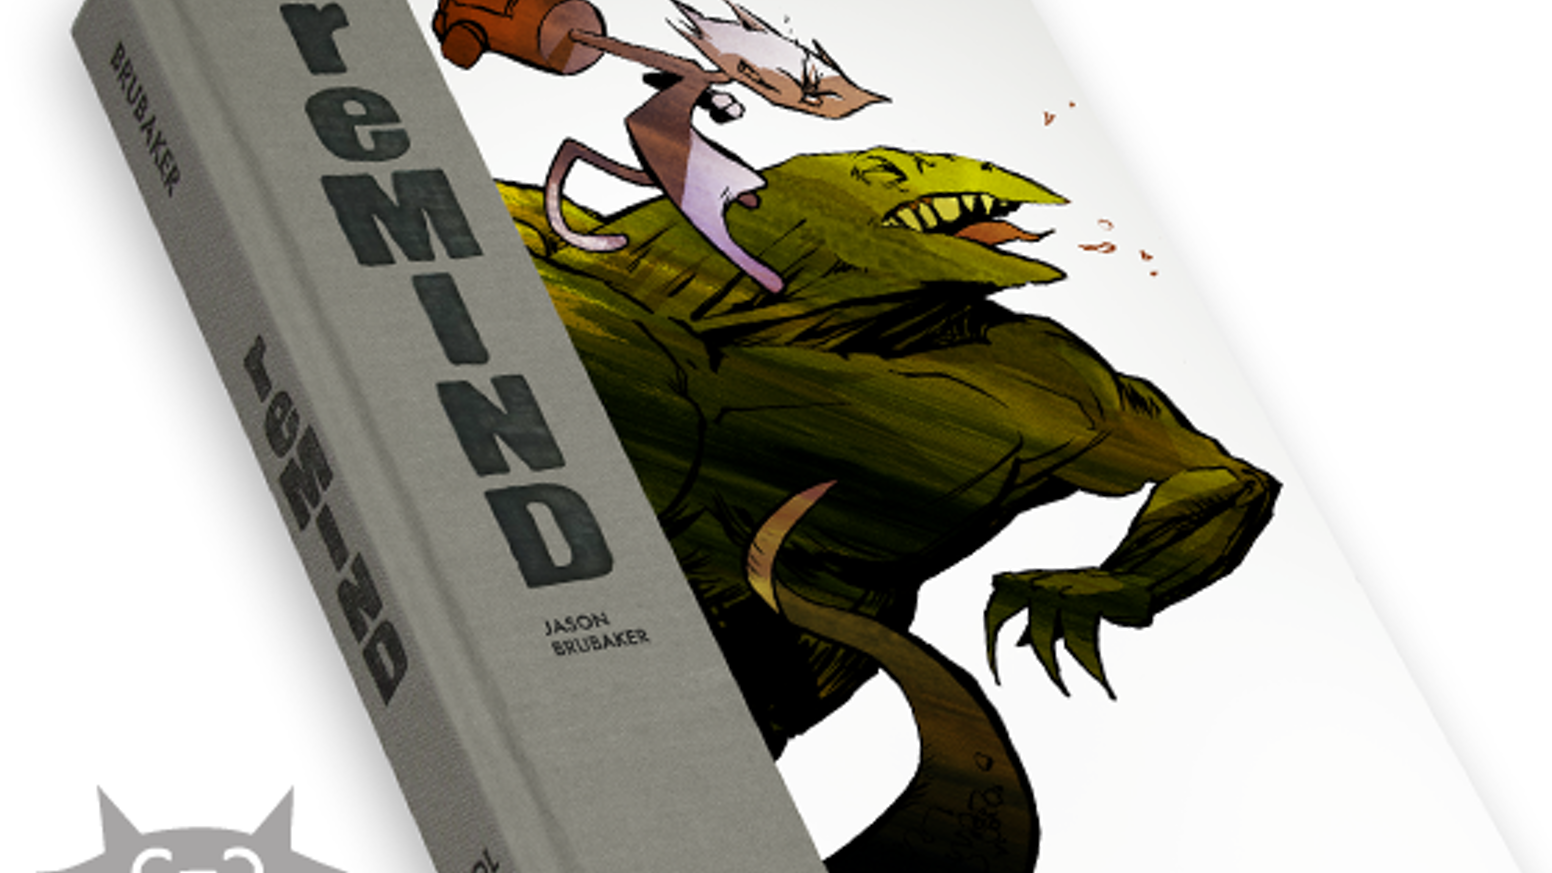 reMIND is an award winning, all ages graphic novel in a beautiful full color, hard bound, numbered and signed book.